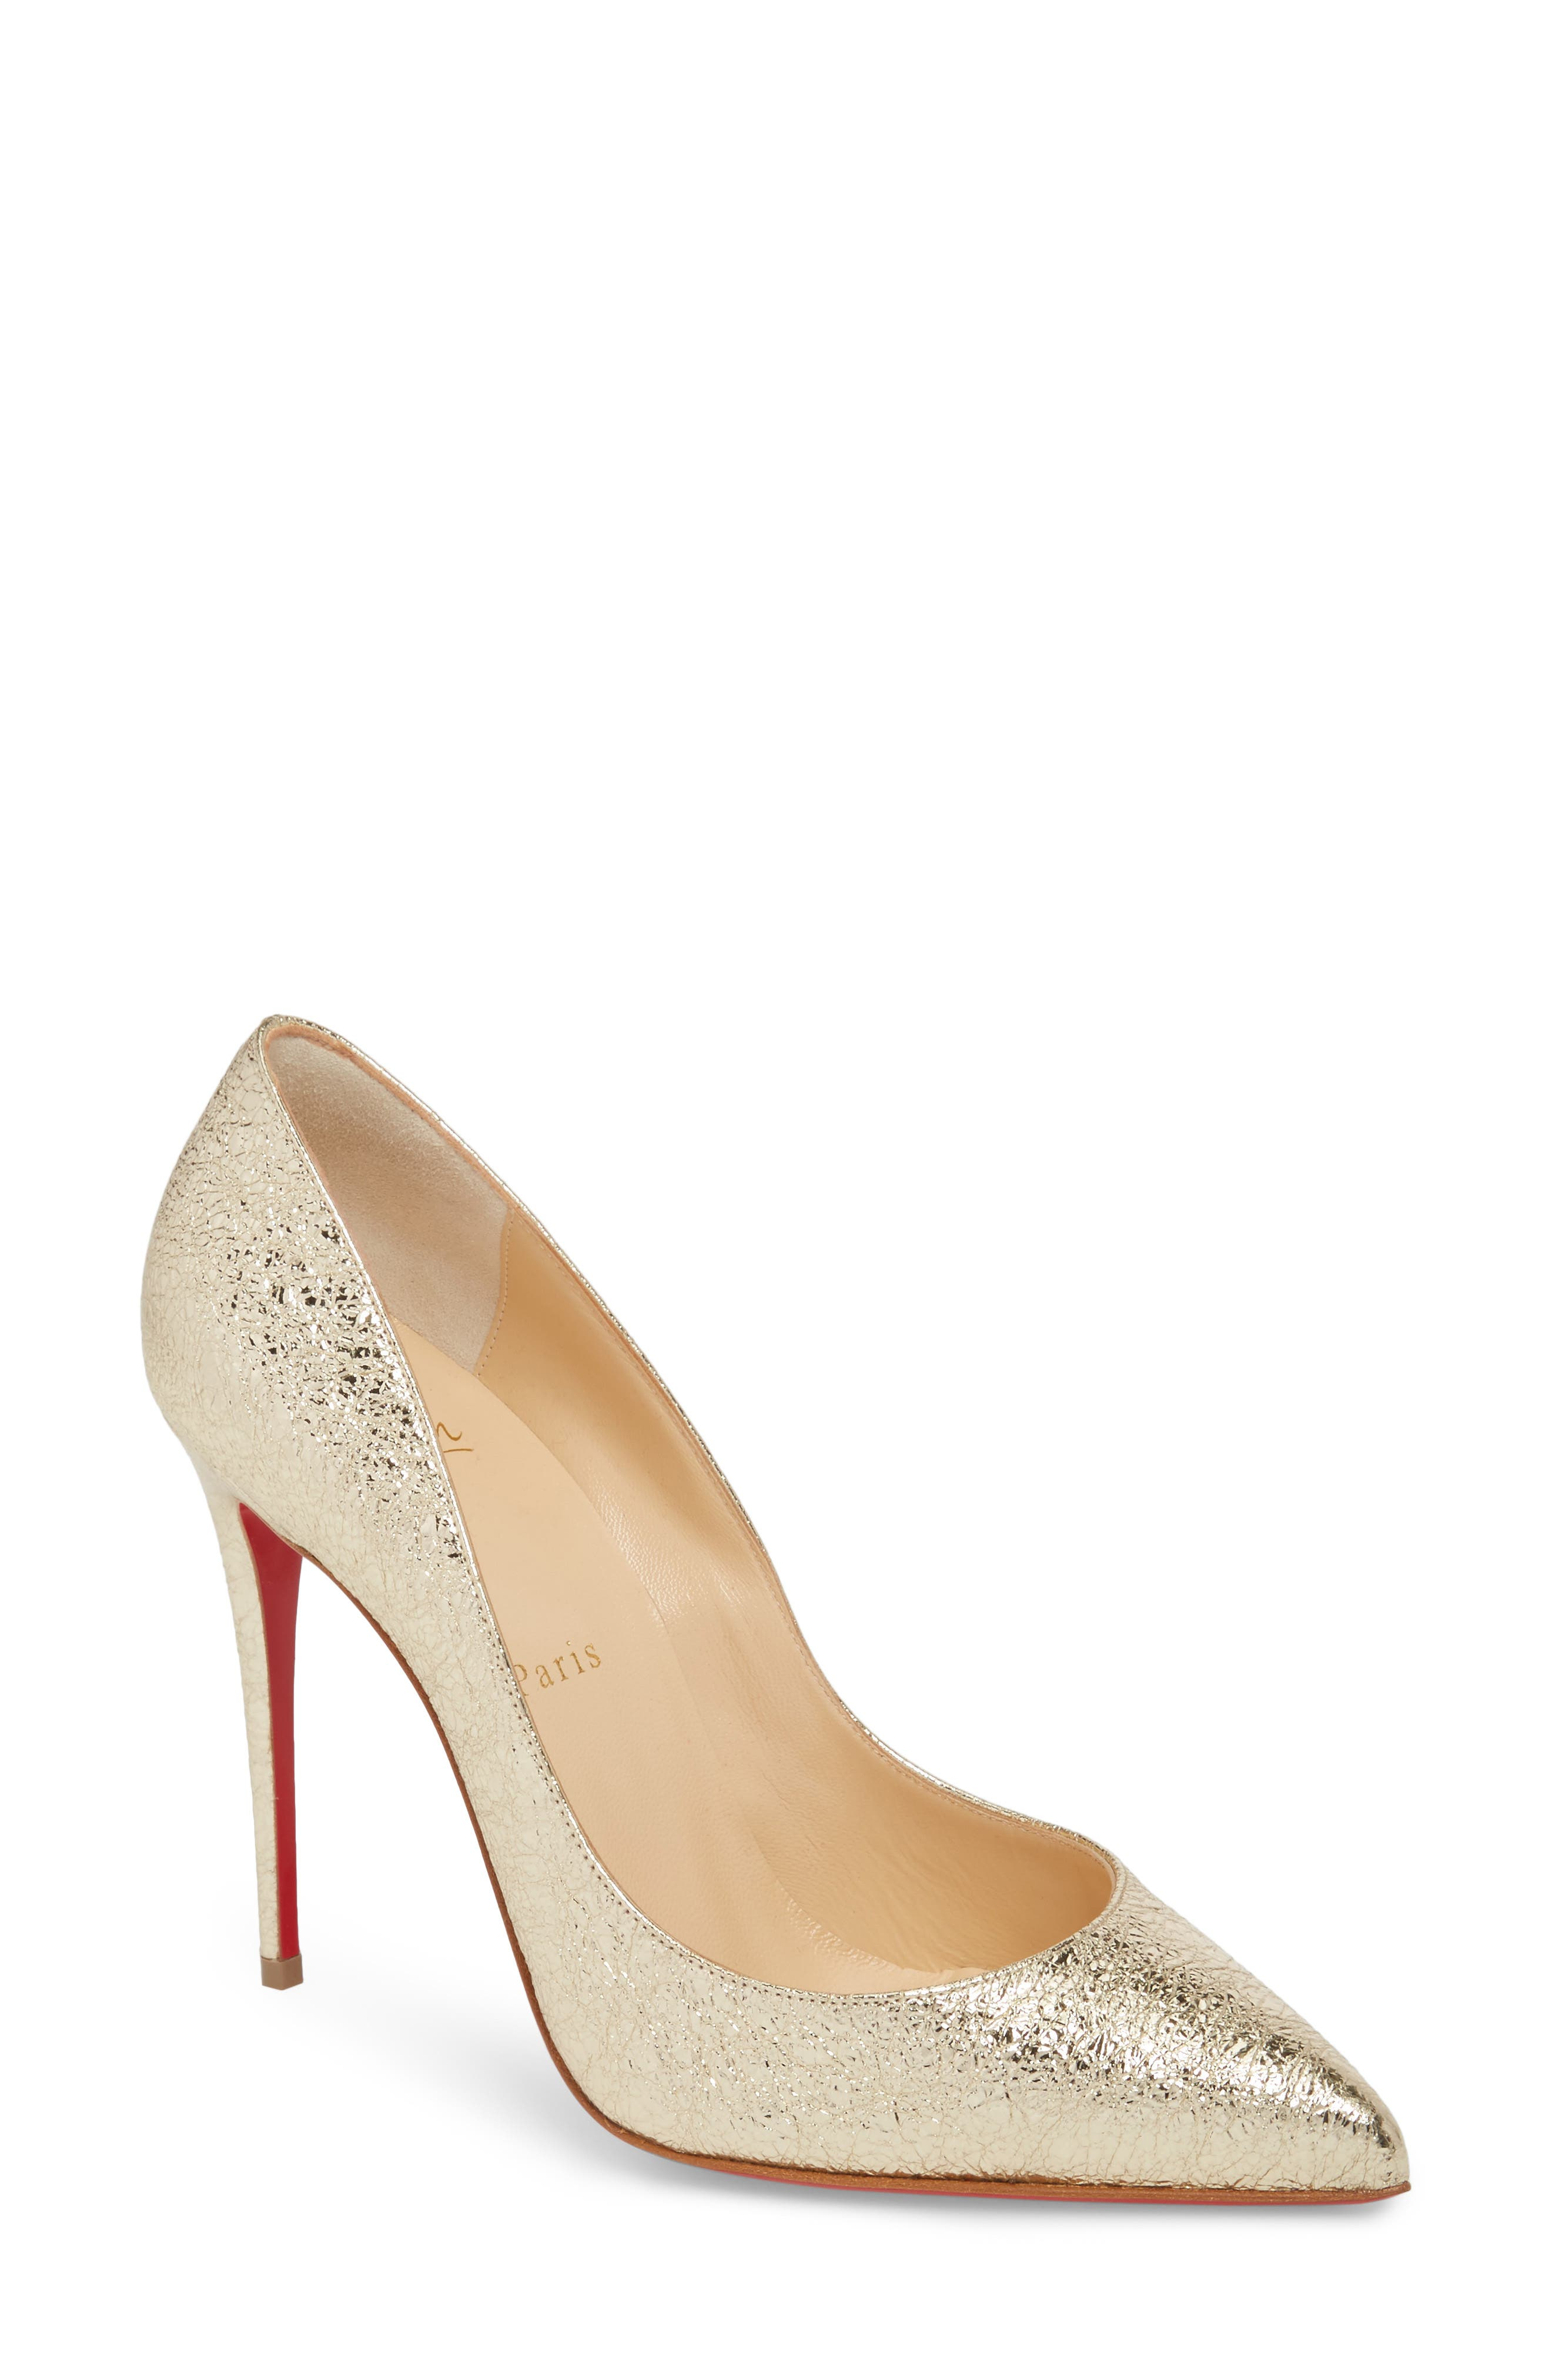 Pigalle Follies Pointy Toe Pump,                             Main thumbnail 1, color,                             040